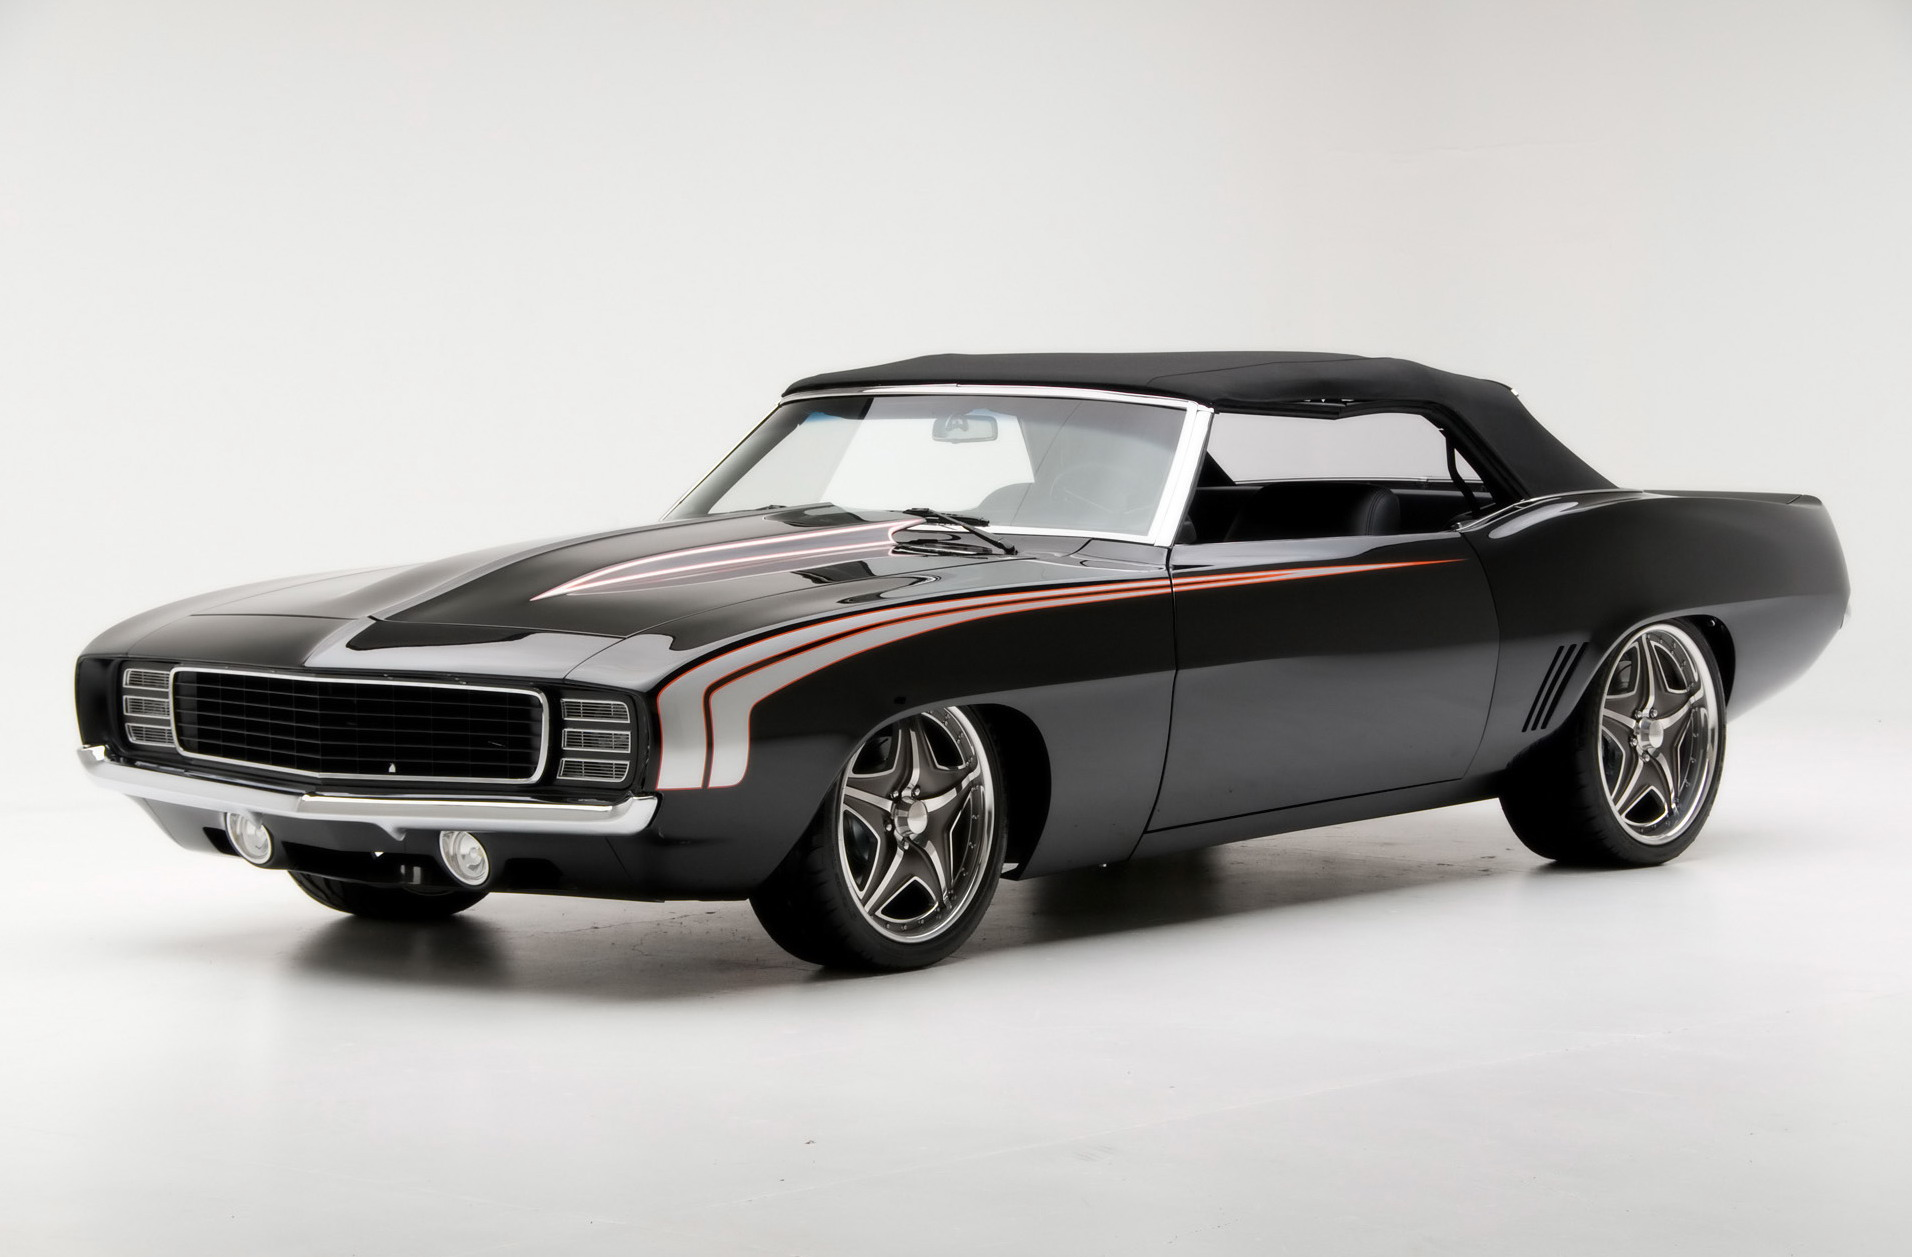 Chevrolet Camaro Convertible Supercar By Modern Muscle News ...